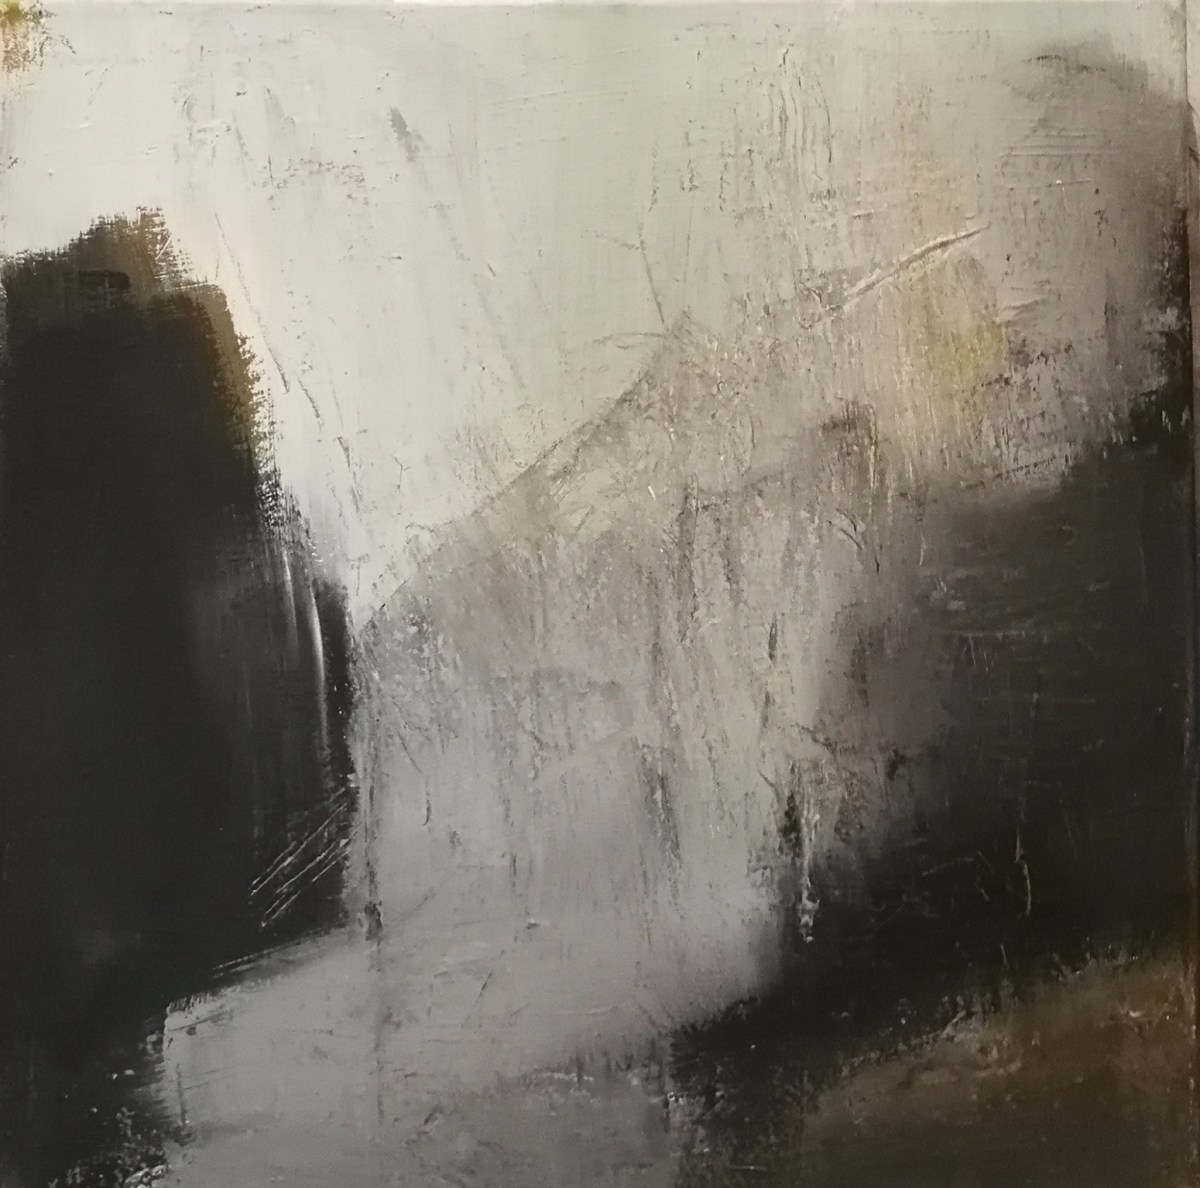 Shades of black and white 50x50